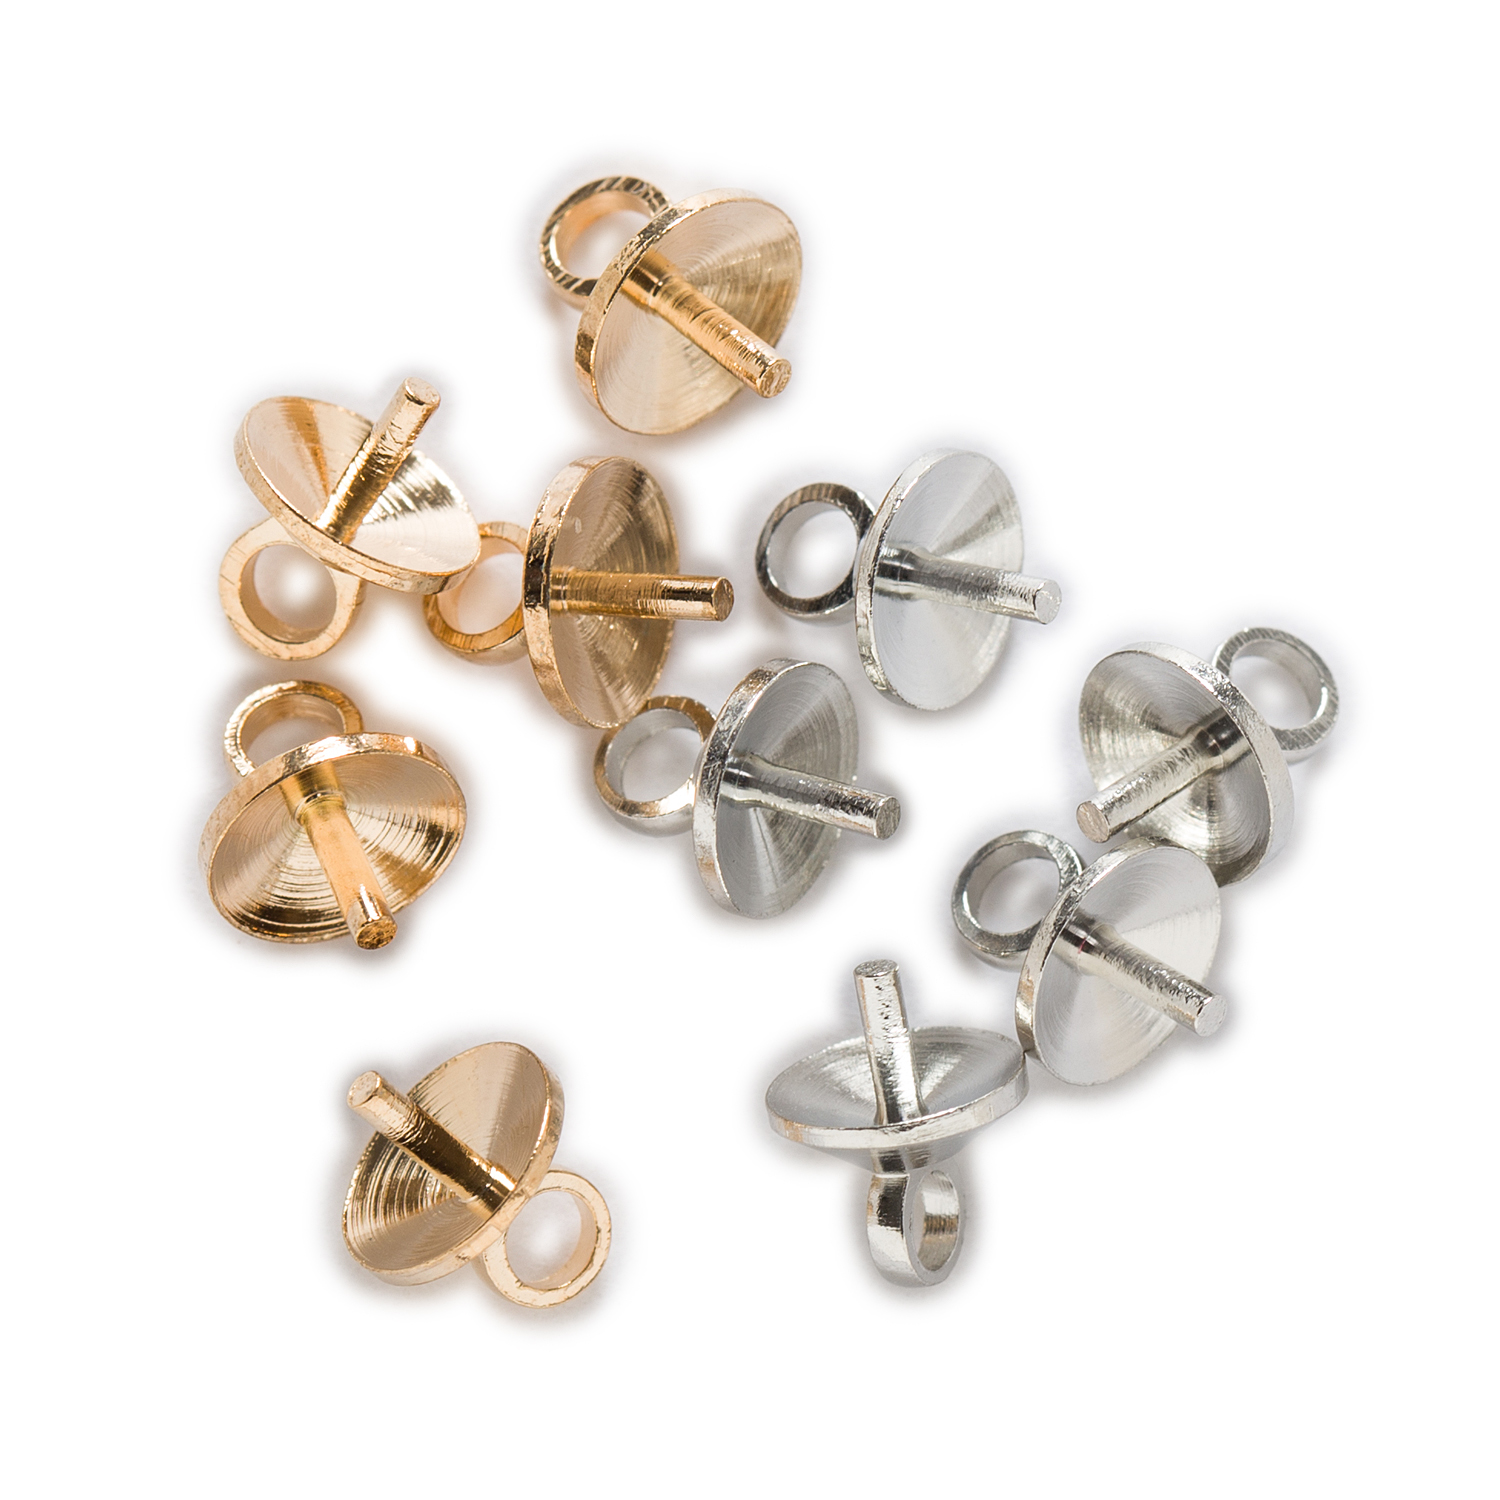 20pcs 925 Sterling Silver Pearl Charms Bail Cap Eye Pin Jewelry Findings 6mm